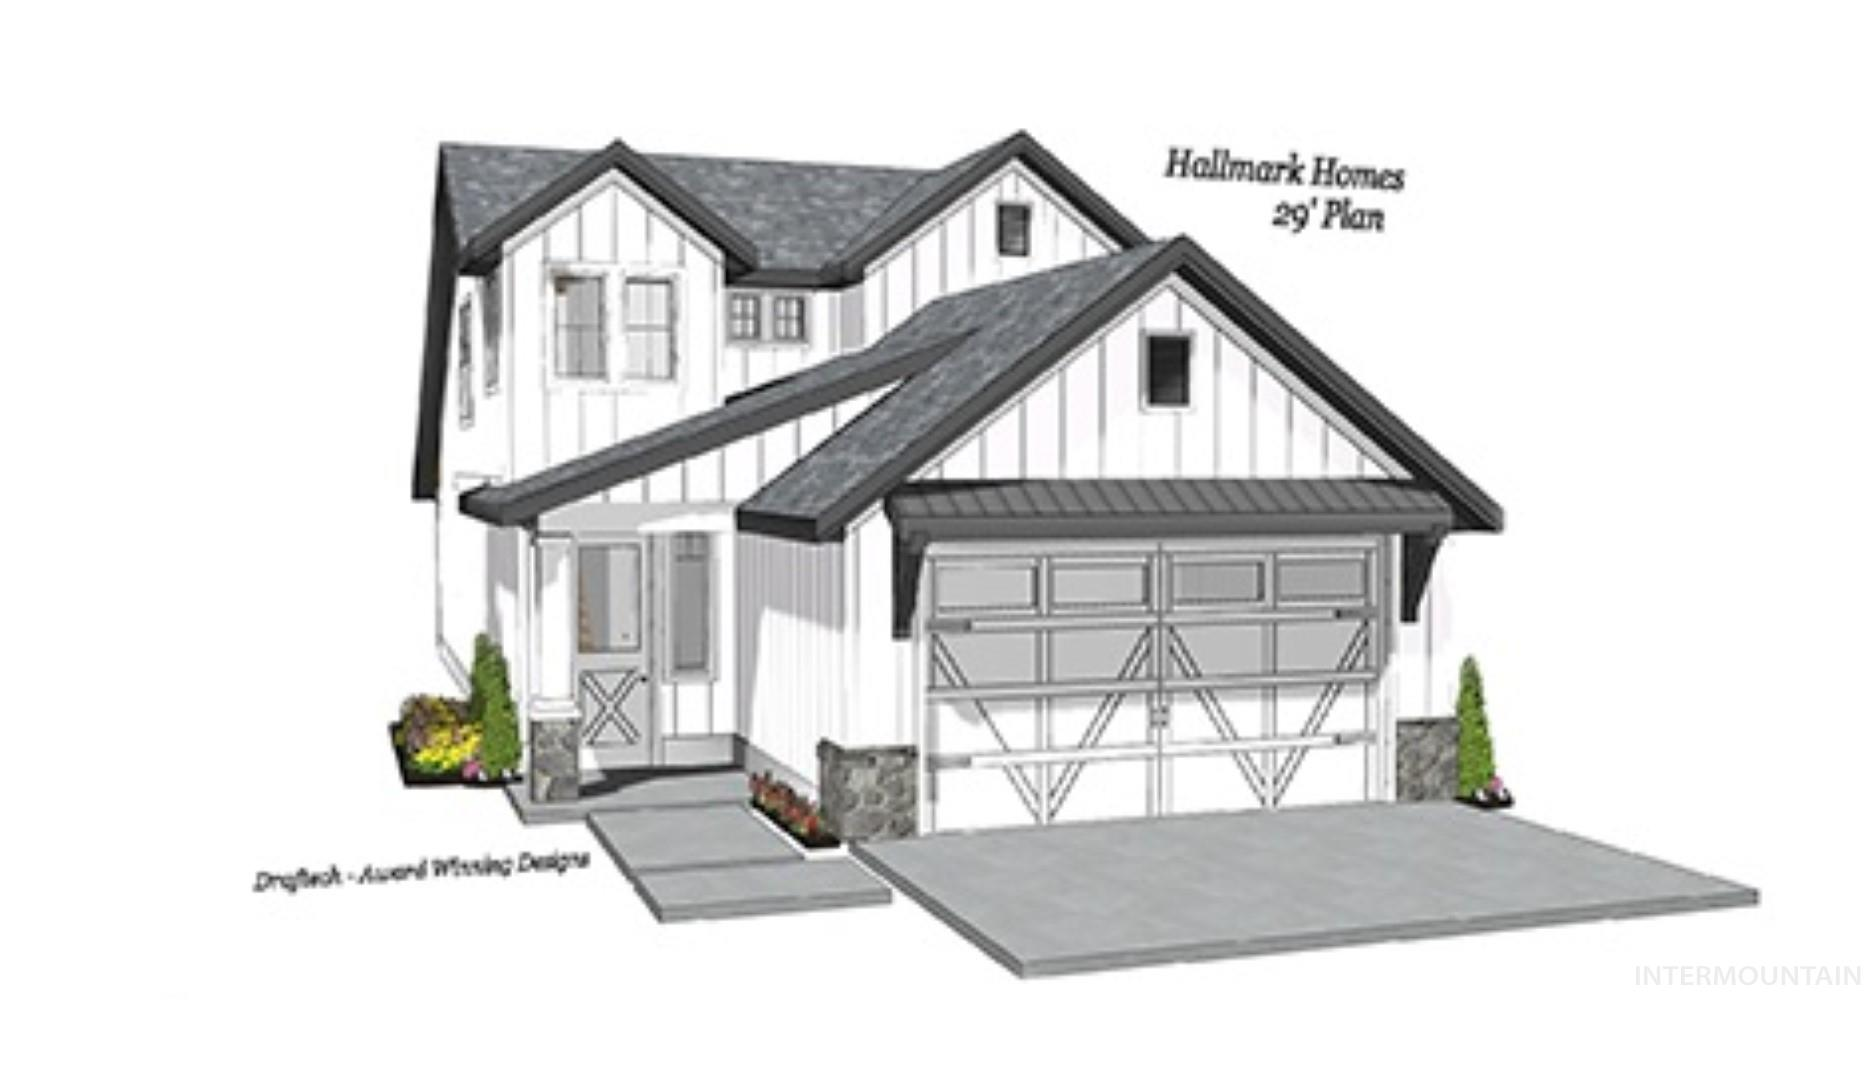 The all new Ponderosa Plan by Hallmark Homes, now available in Bainbridge. High quality construction with the standards you expect with hallmark Homes.  Main floor master suite, wonderful bonus room, open and bright kitchen.  All on a perfect east backyard lot.  Close to shopping, restaurants, etc and walk to wonderful neighborhood pools and parks.